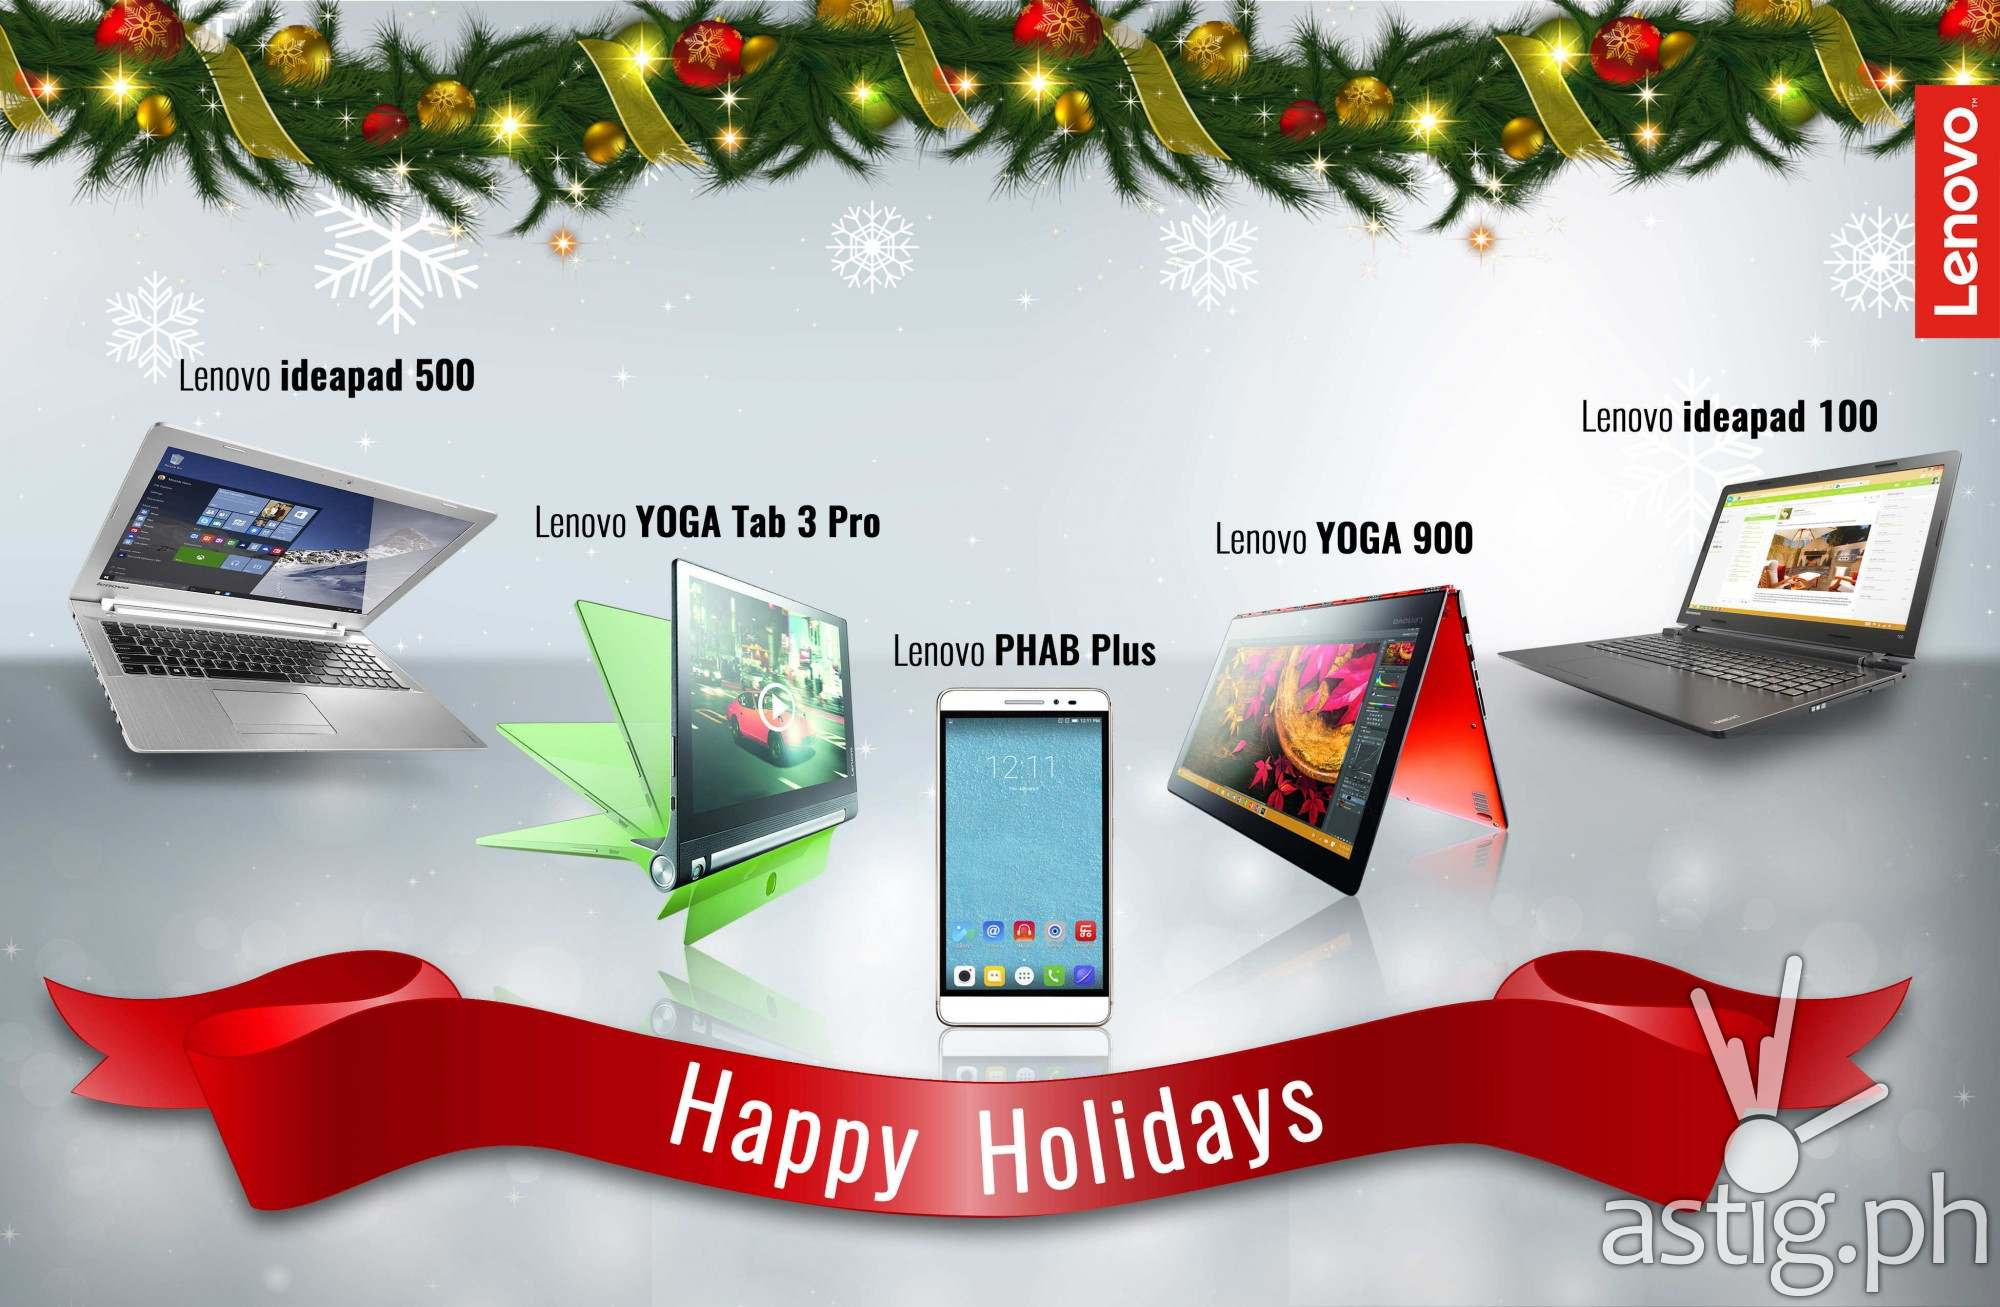 Look Forward to an Enjoyable, Productive 2016 with the Lenovo Holiday Gift Guide